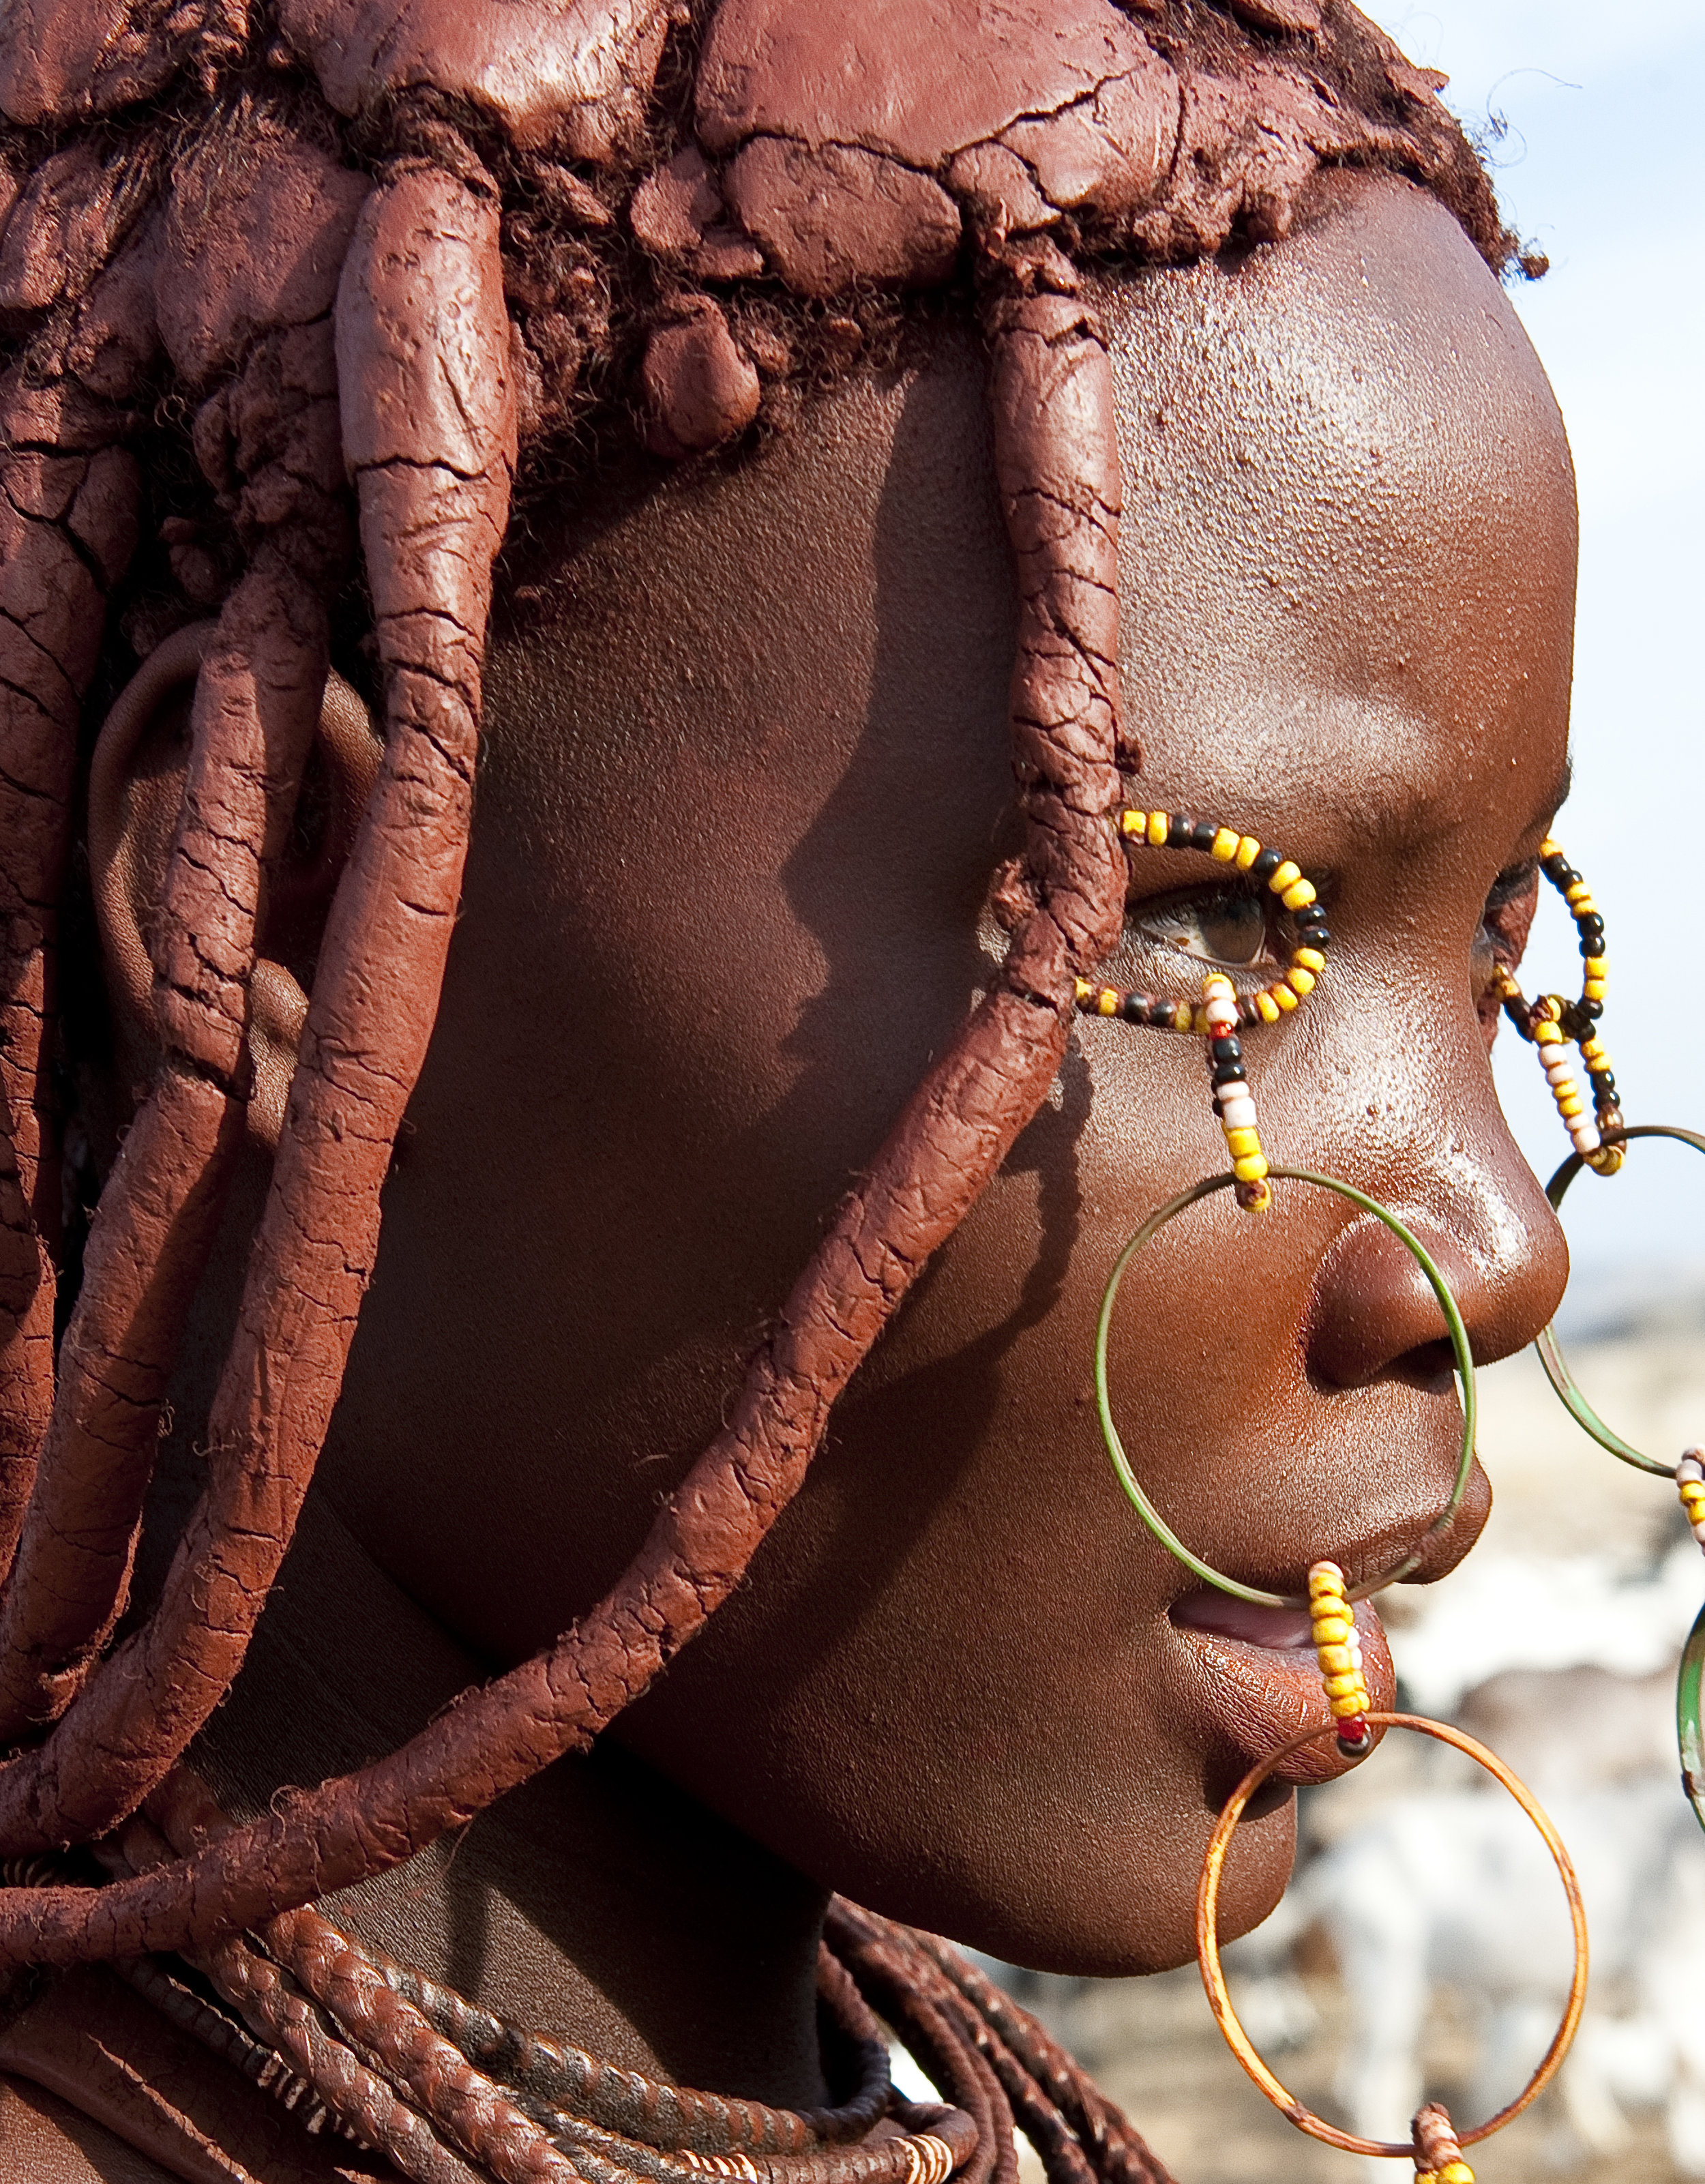 Himba in Namibia for LXRY-magazine